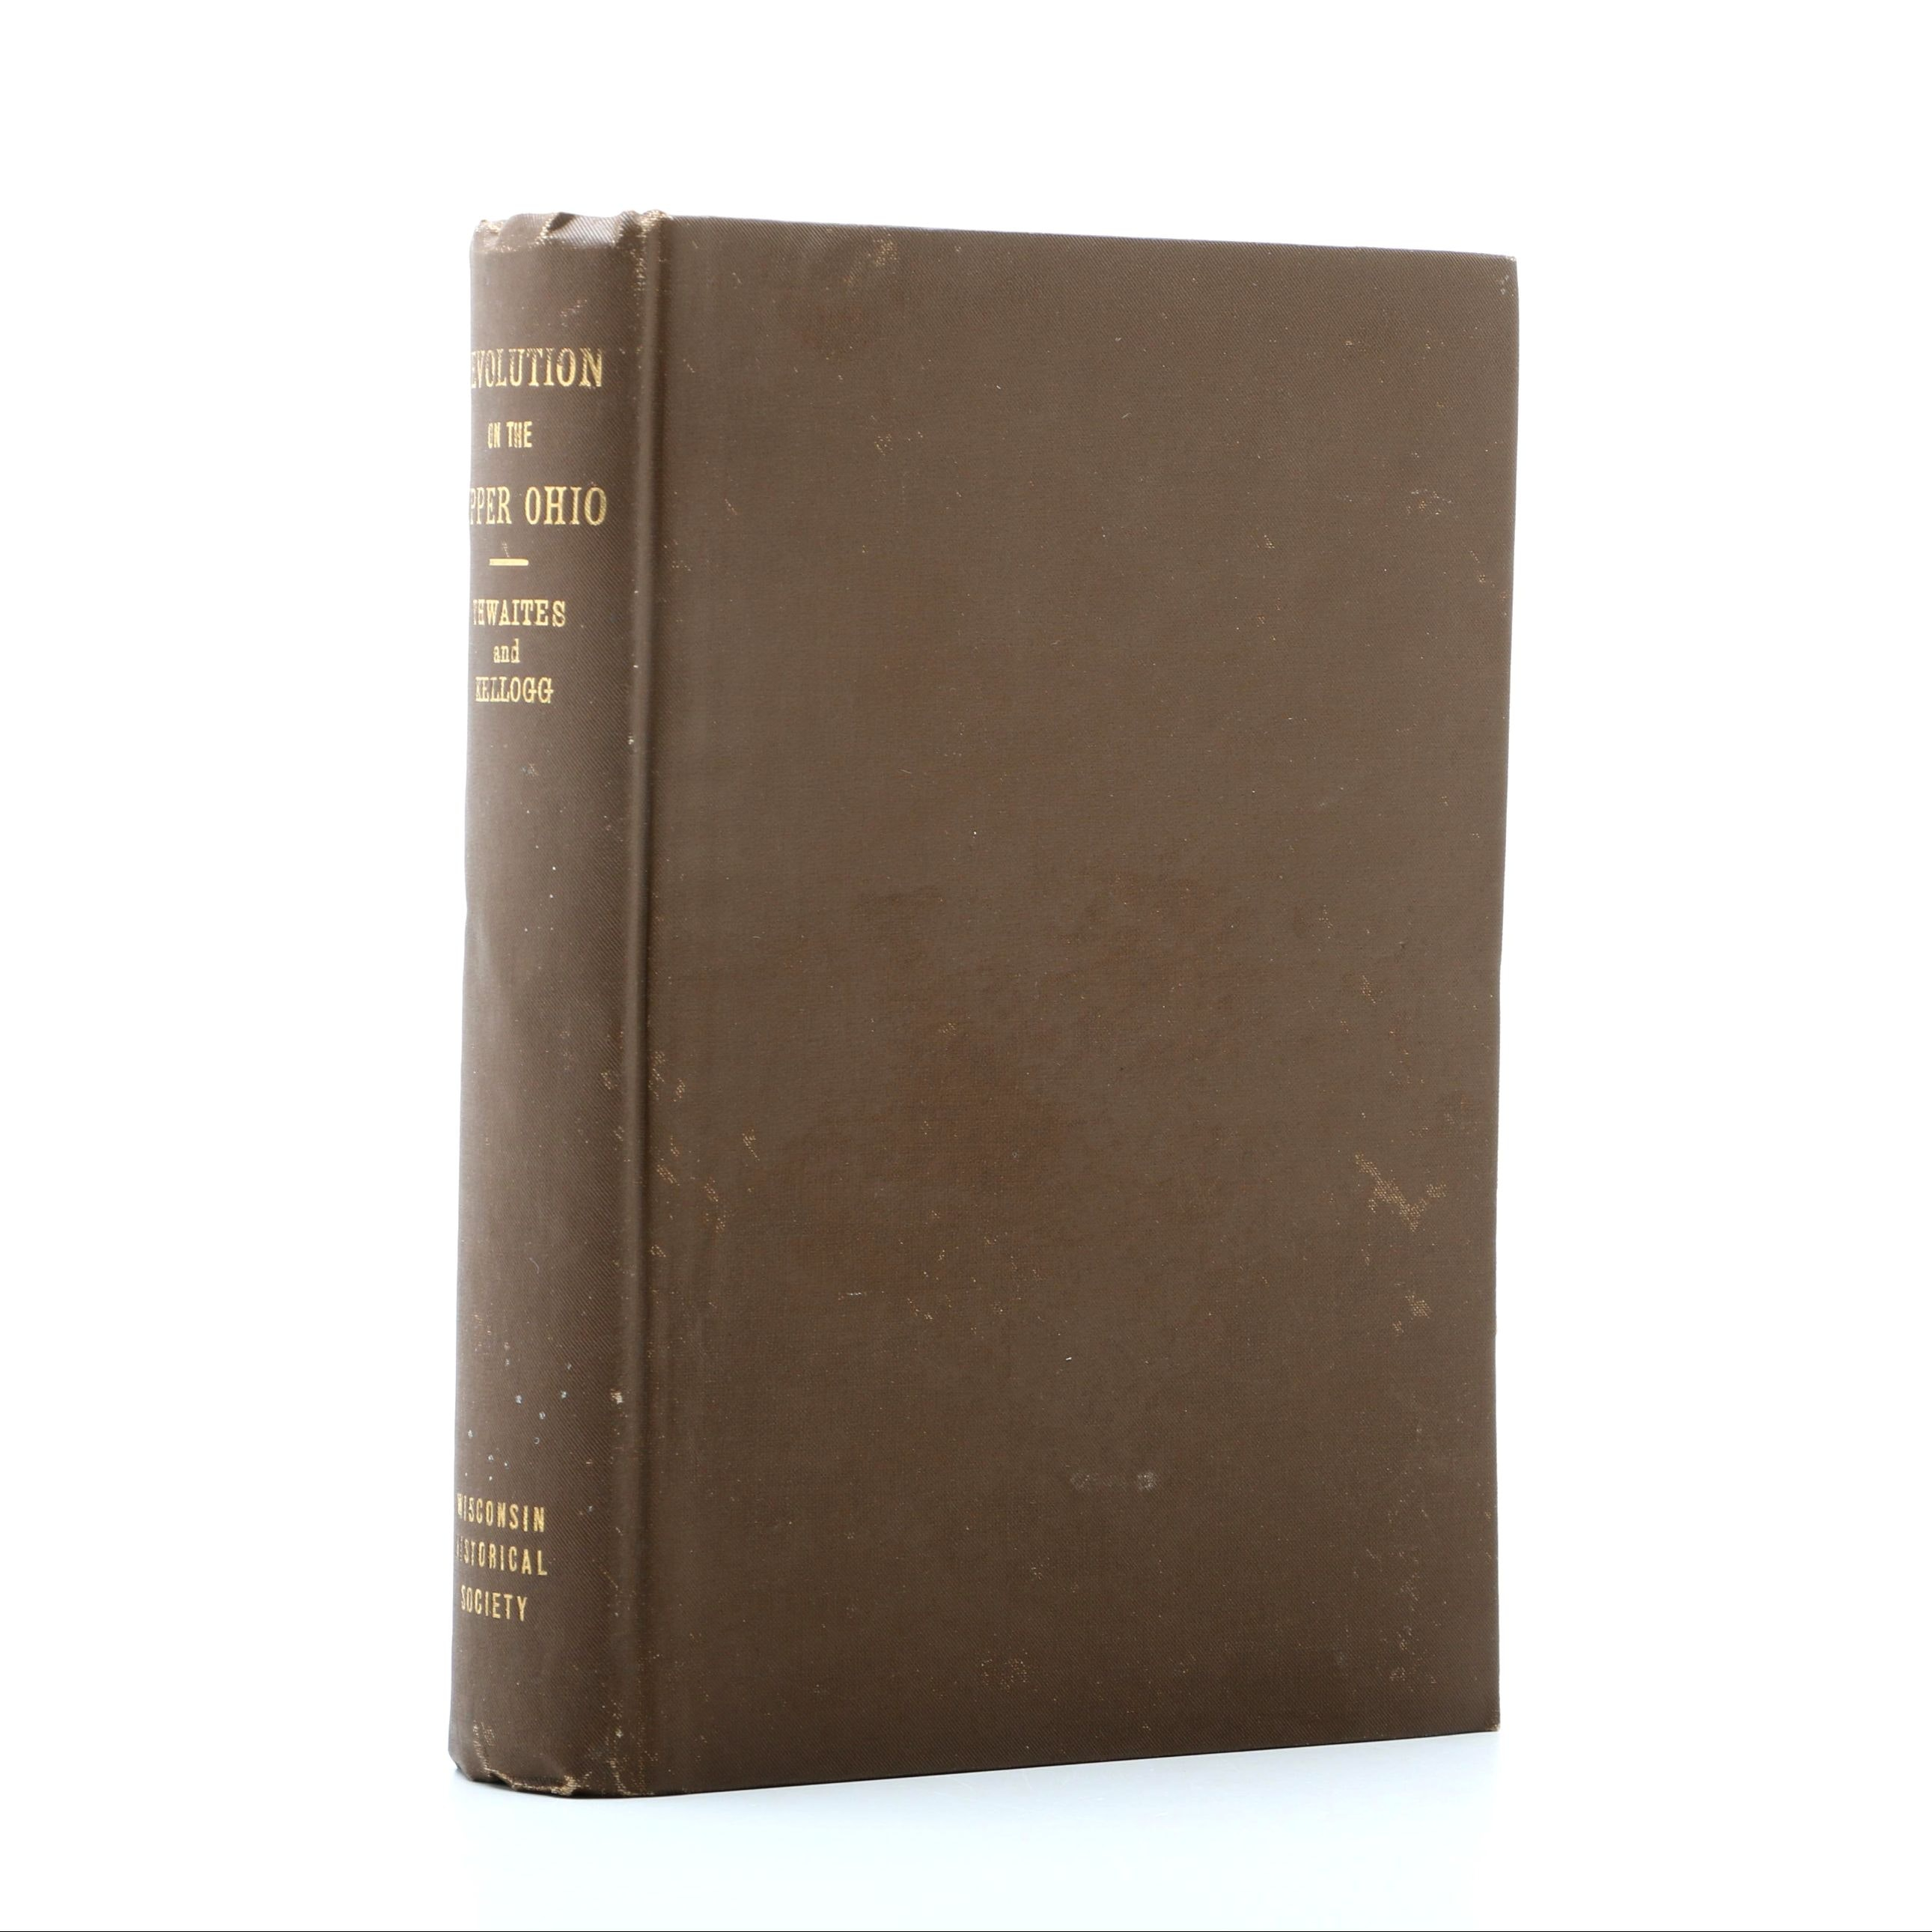 """1908 Signed """"Revolution on the Upper Ohio: 1775-1777"""" by Thwaites and Kellogg"""